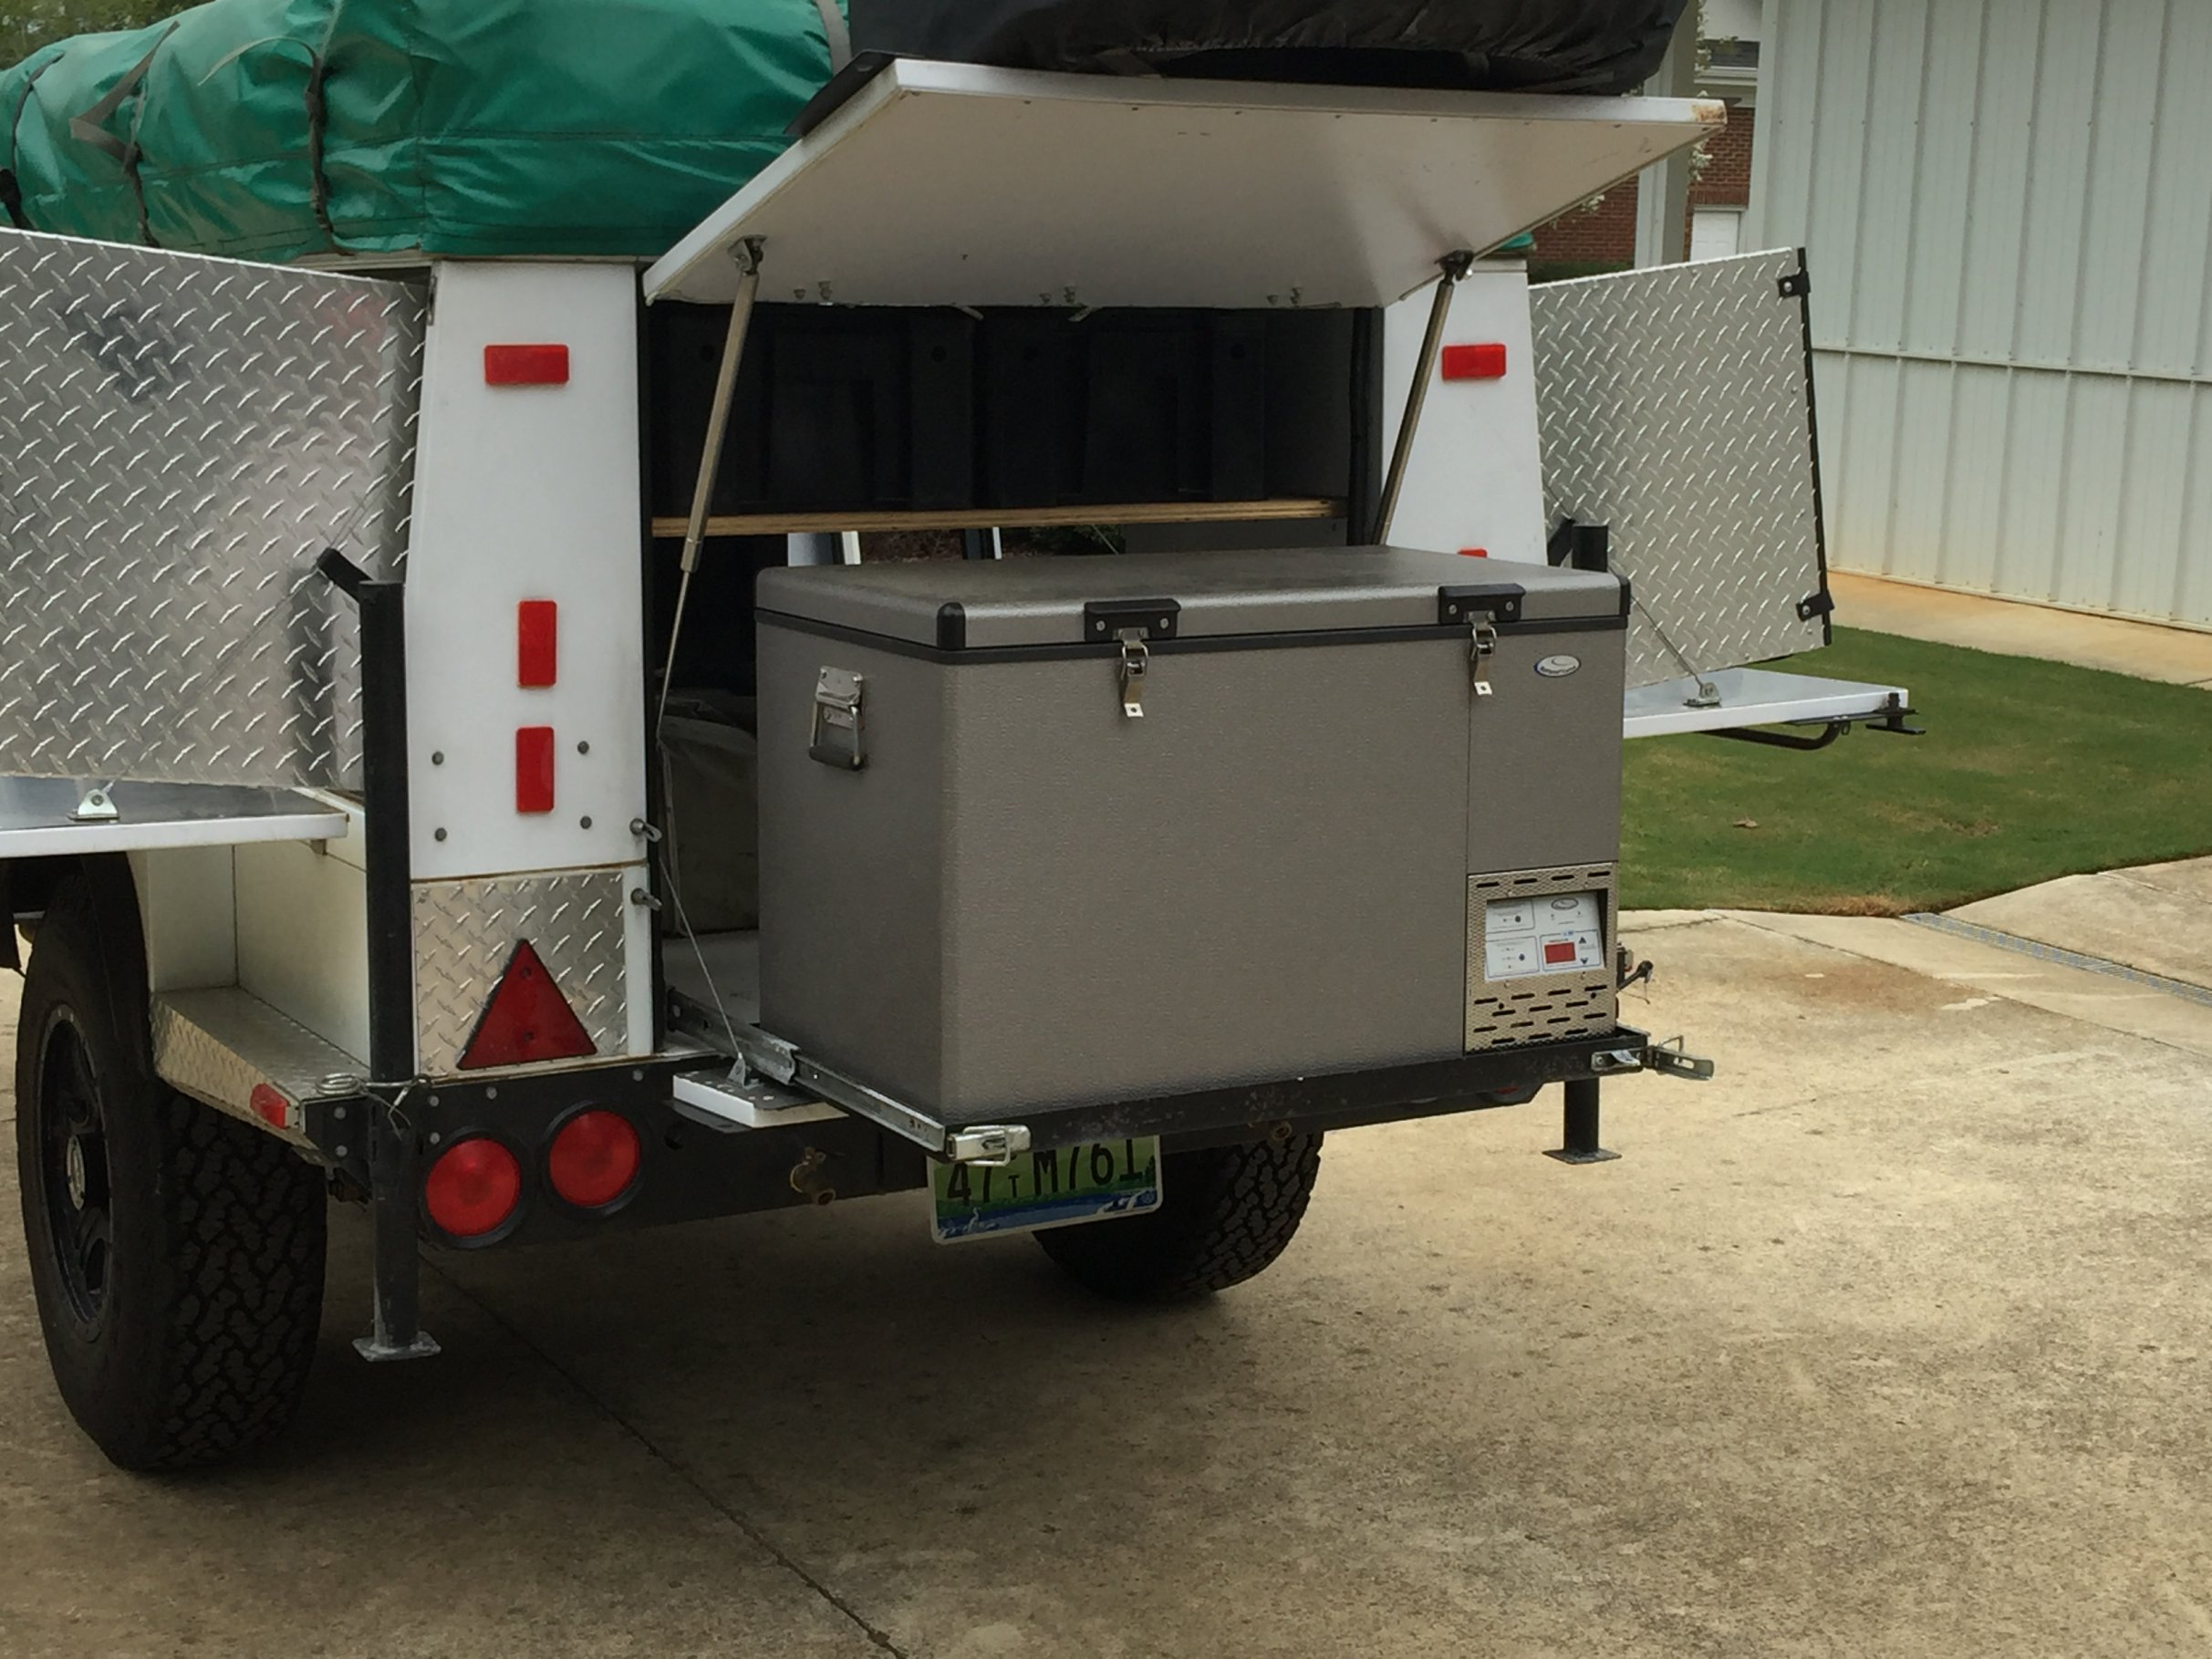 conqueror conquest for sale huntsville al expedition portal rh expeditionportal com 7-Wire Trailer Wiring Diagram 4 Flat Trailer Wiring